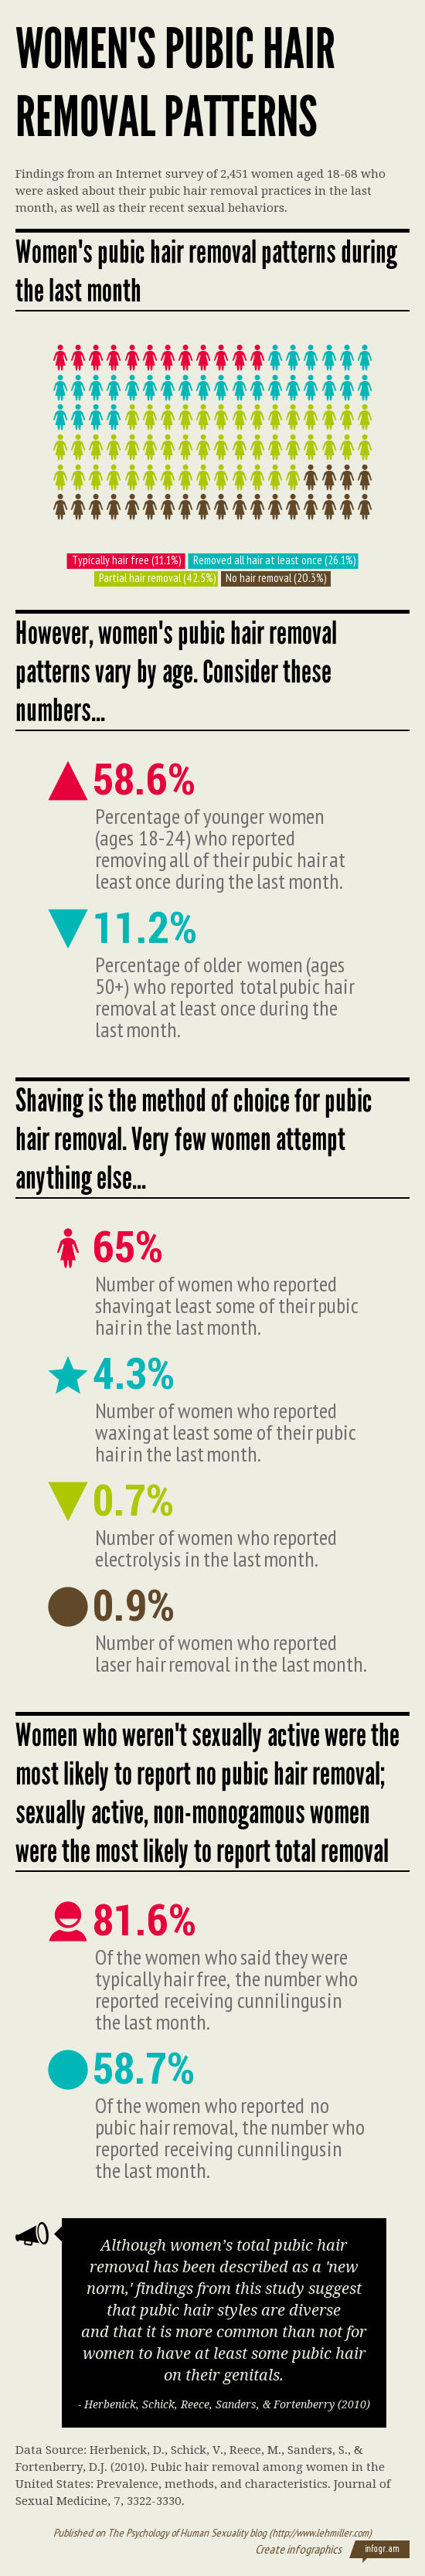 Infographic showing data on the frequency of women's pubic hair removal and methods used